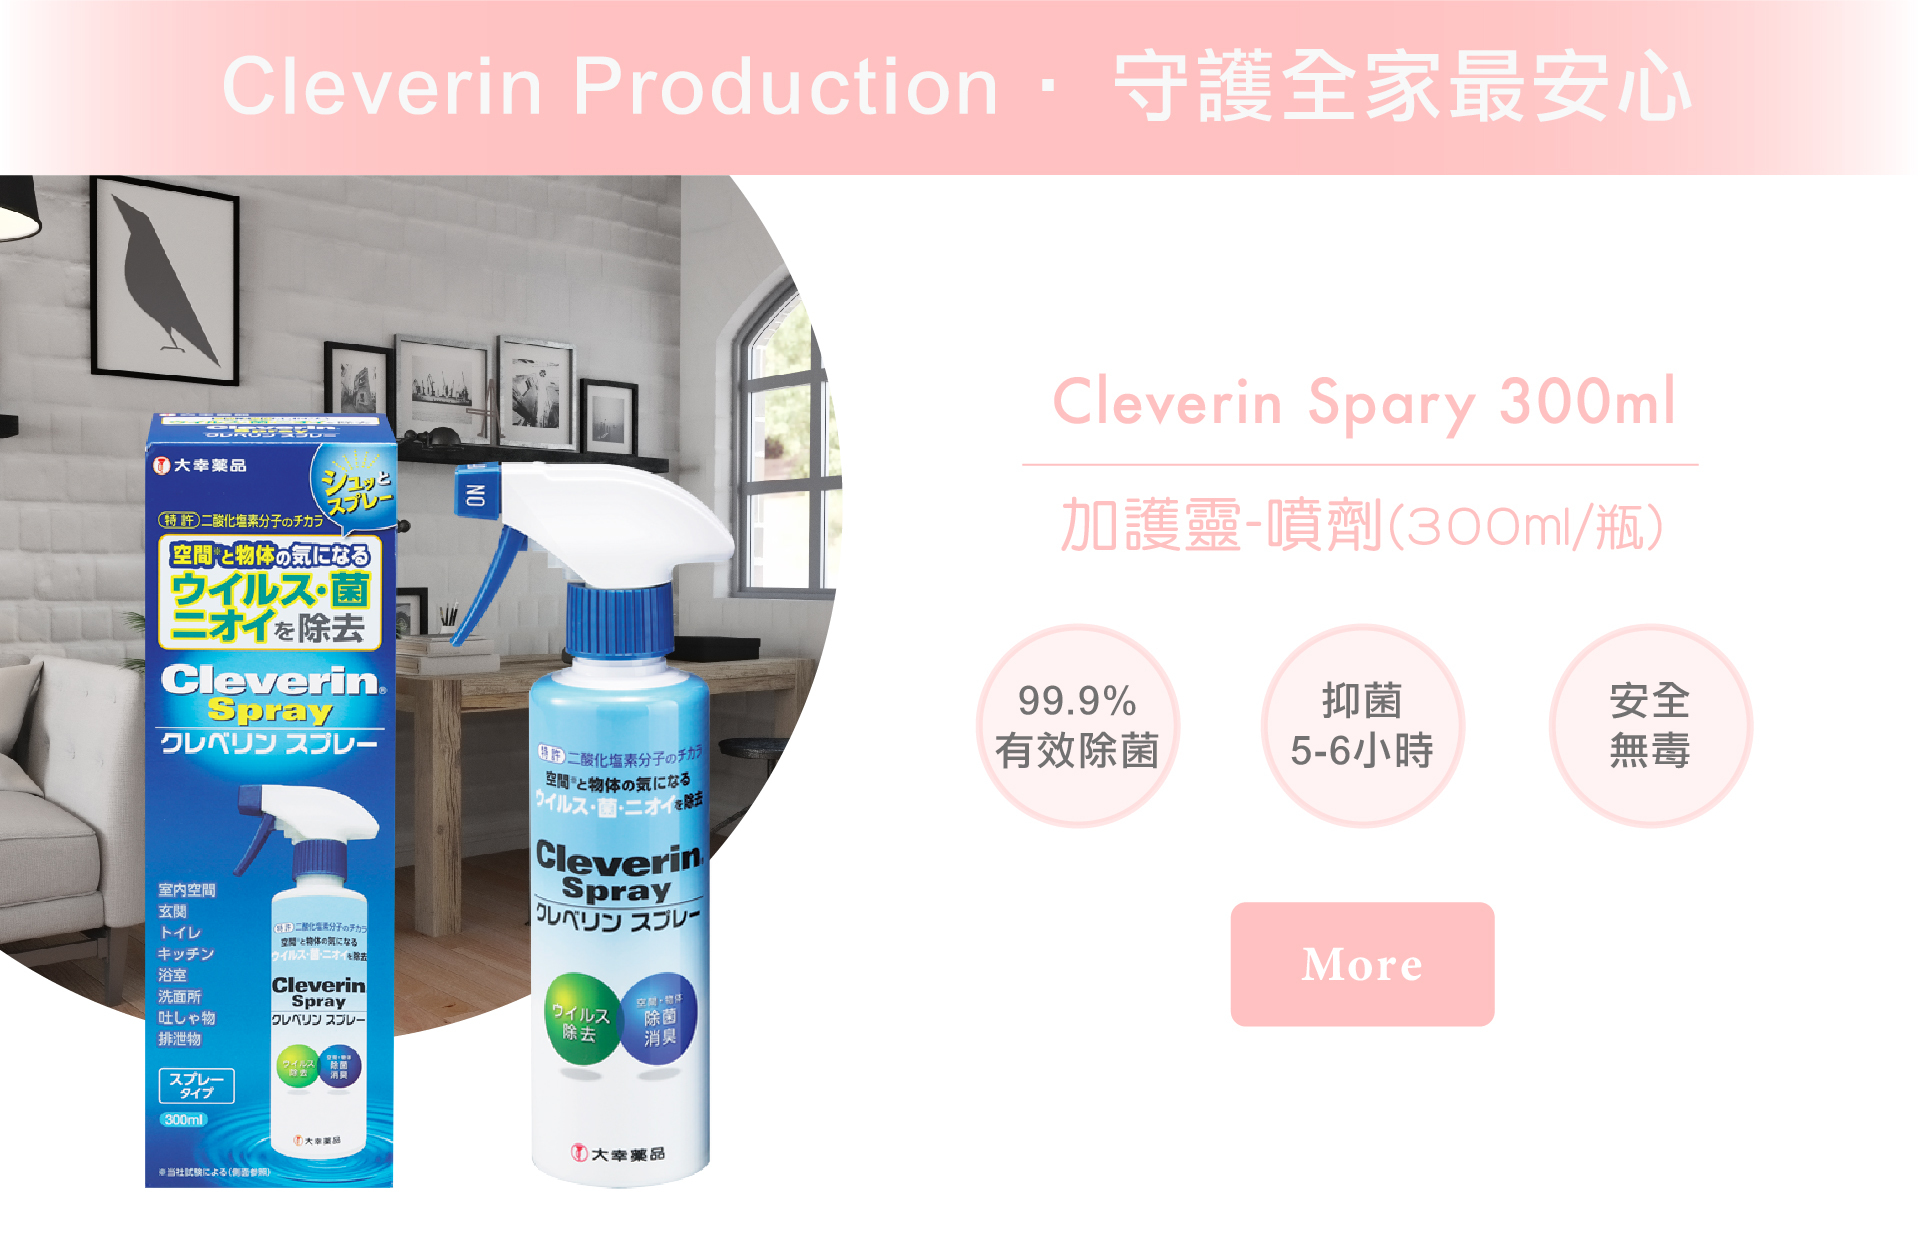 cleverin spray 加護靈 噴劑300ml